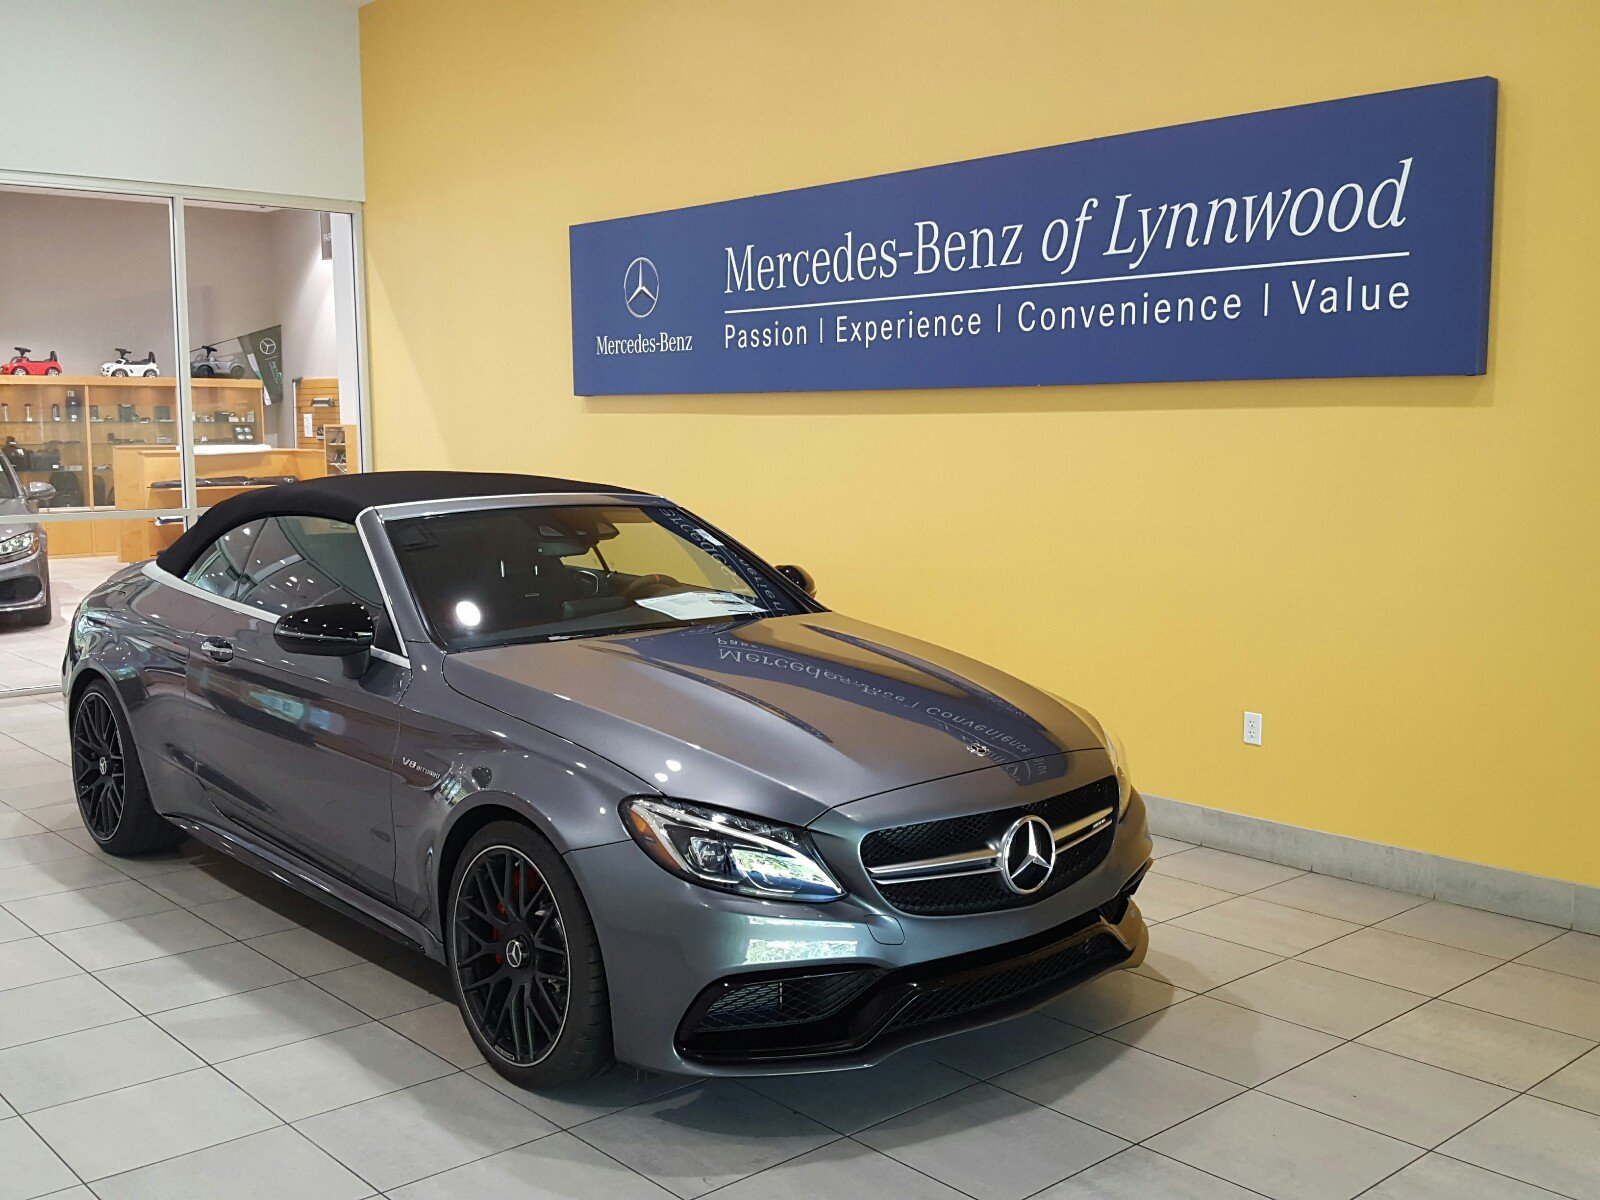 pre owned 2018 mercedes benz c class amg c 63 s cabriolet cabriolet in lynnwood 28068. Black Bedroom Furniture Sets. Home Design Ideas